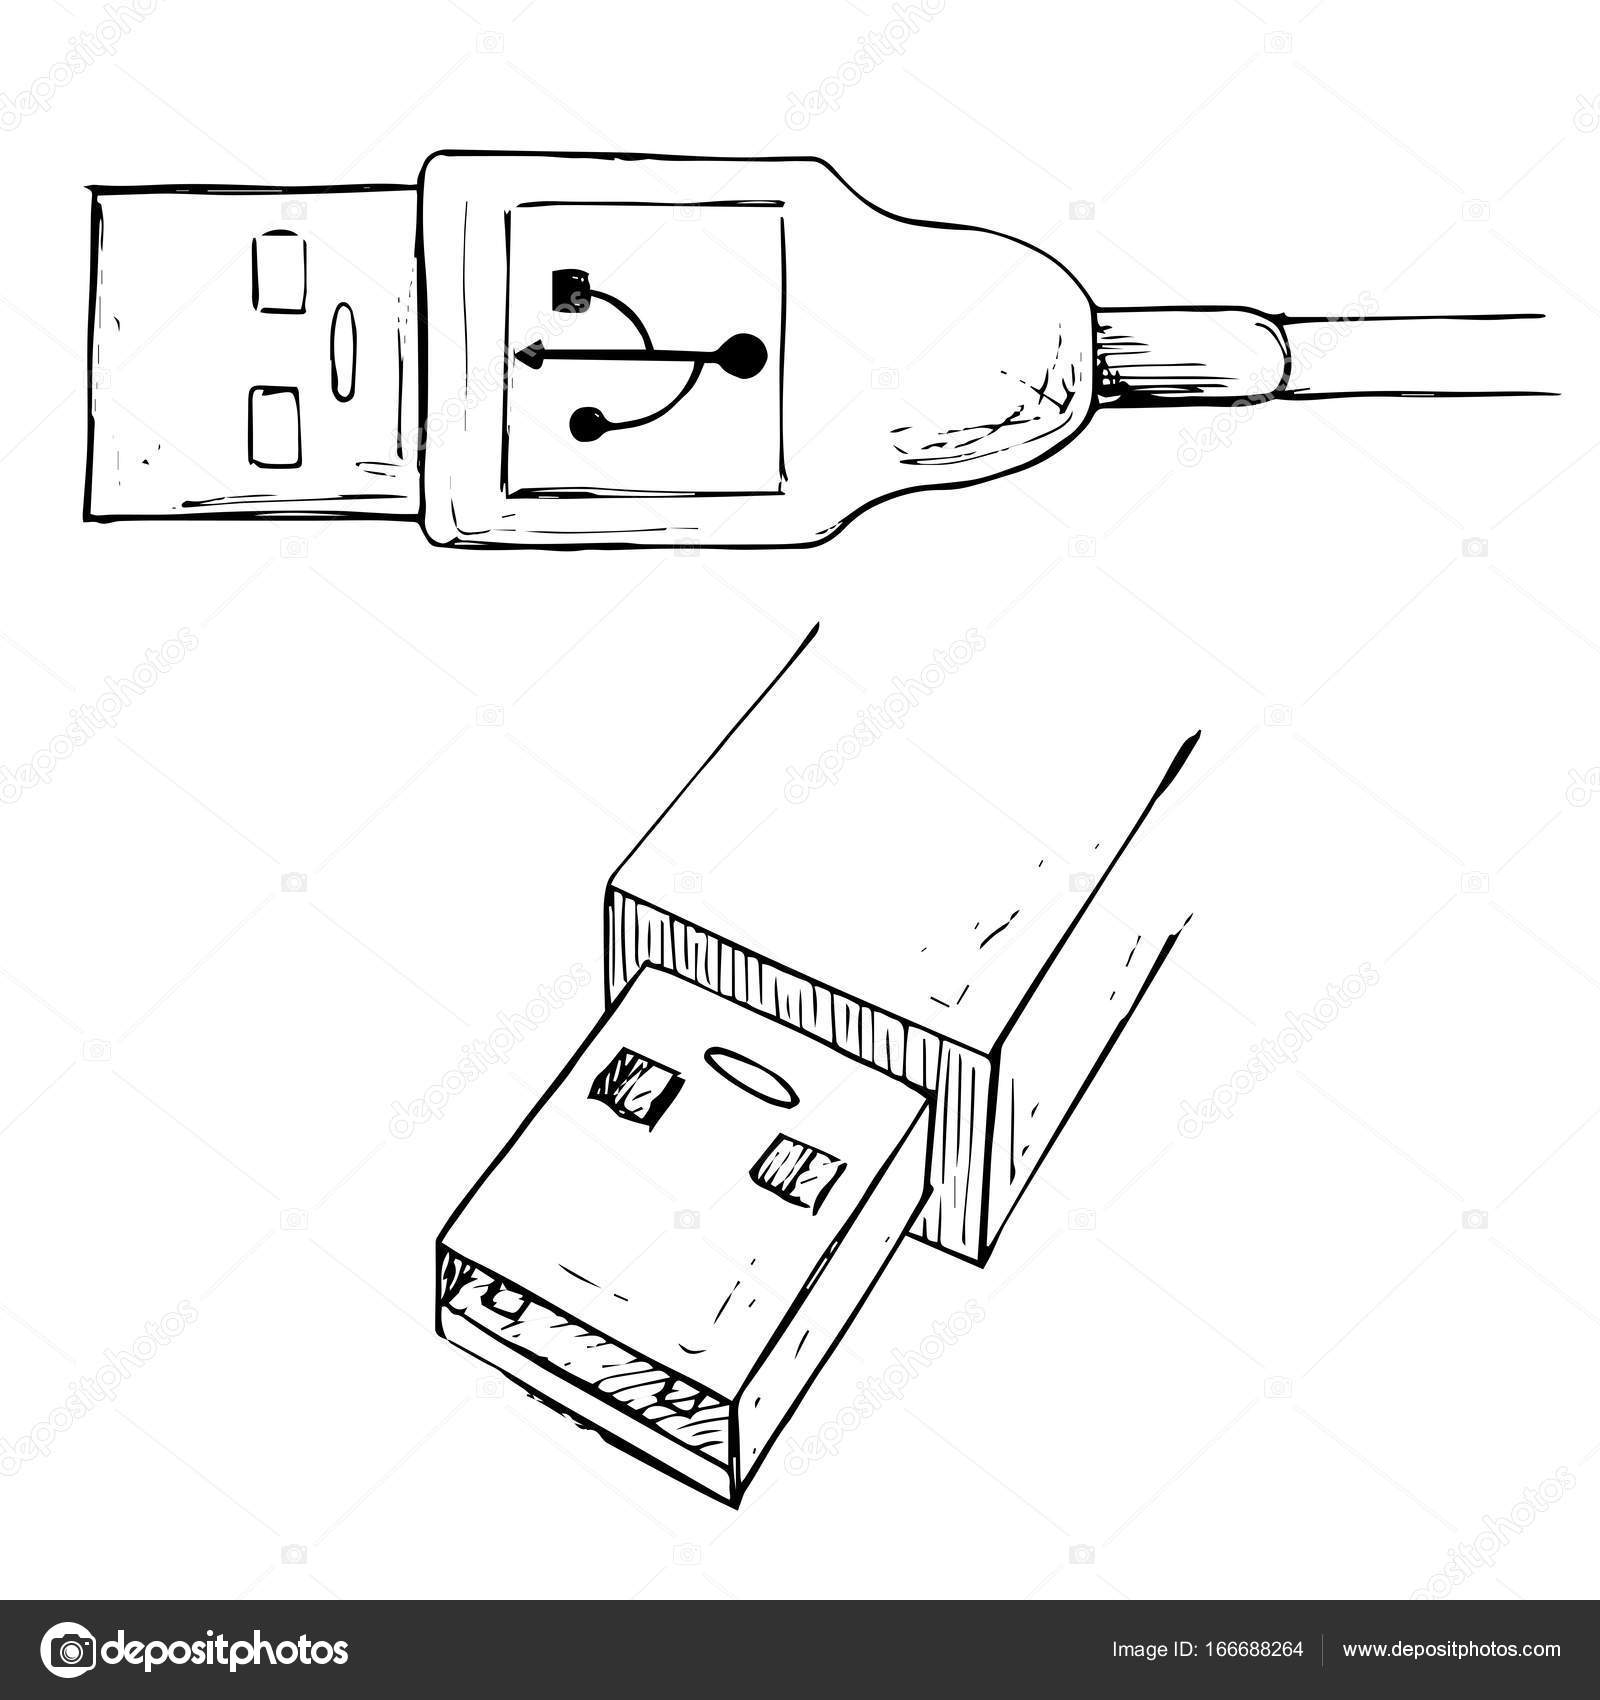 usb cable line drawing